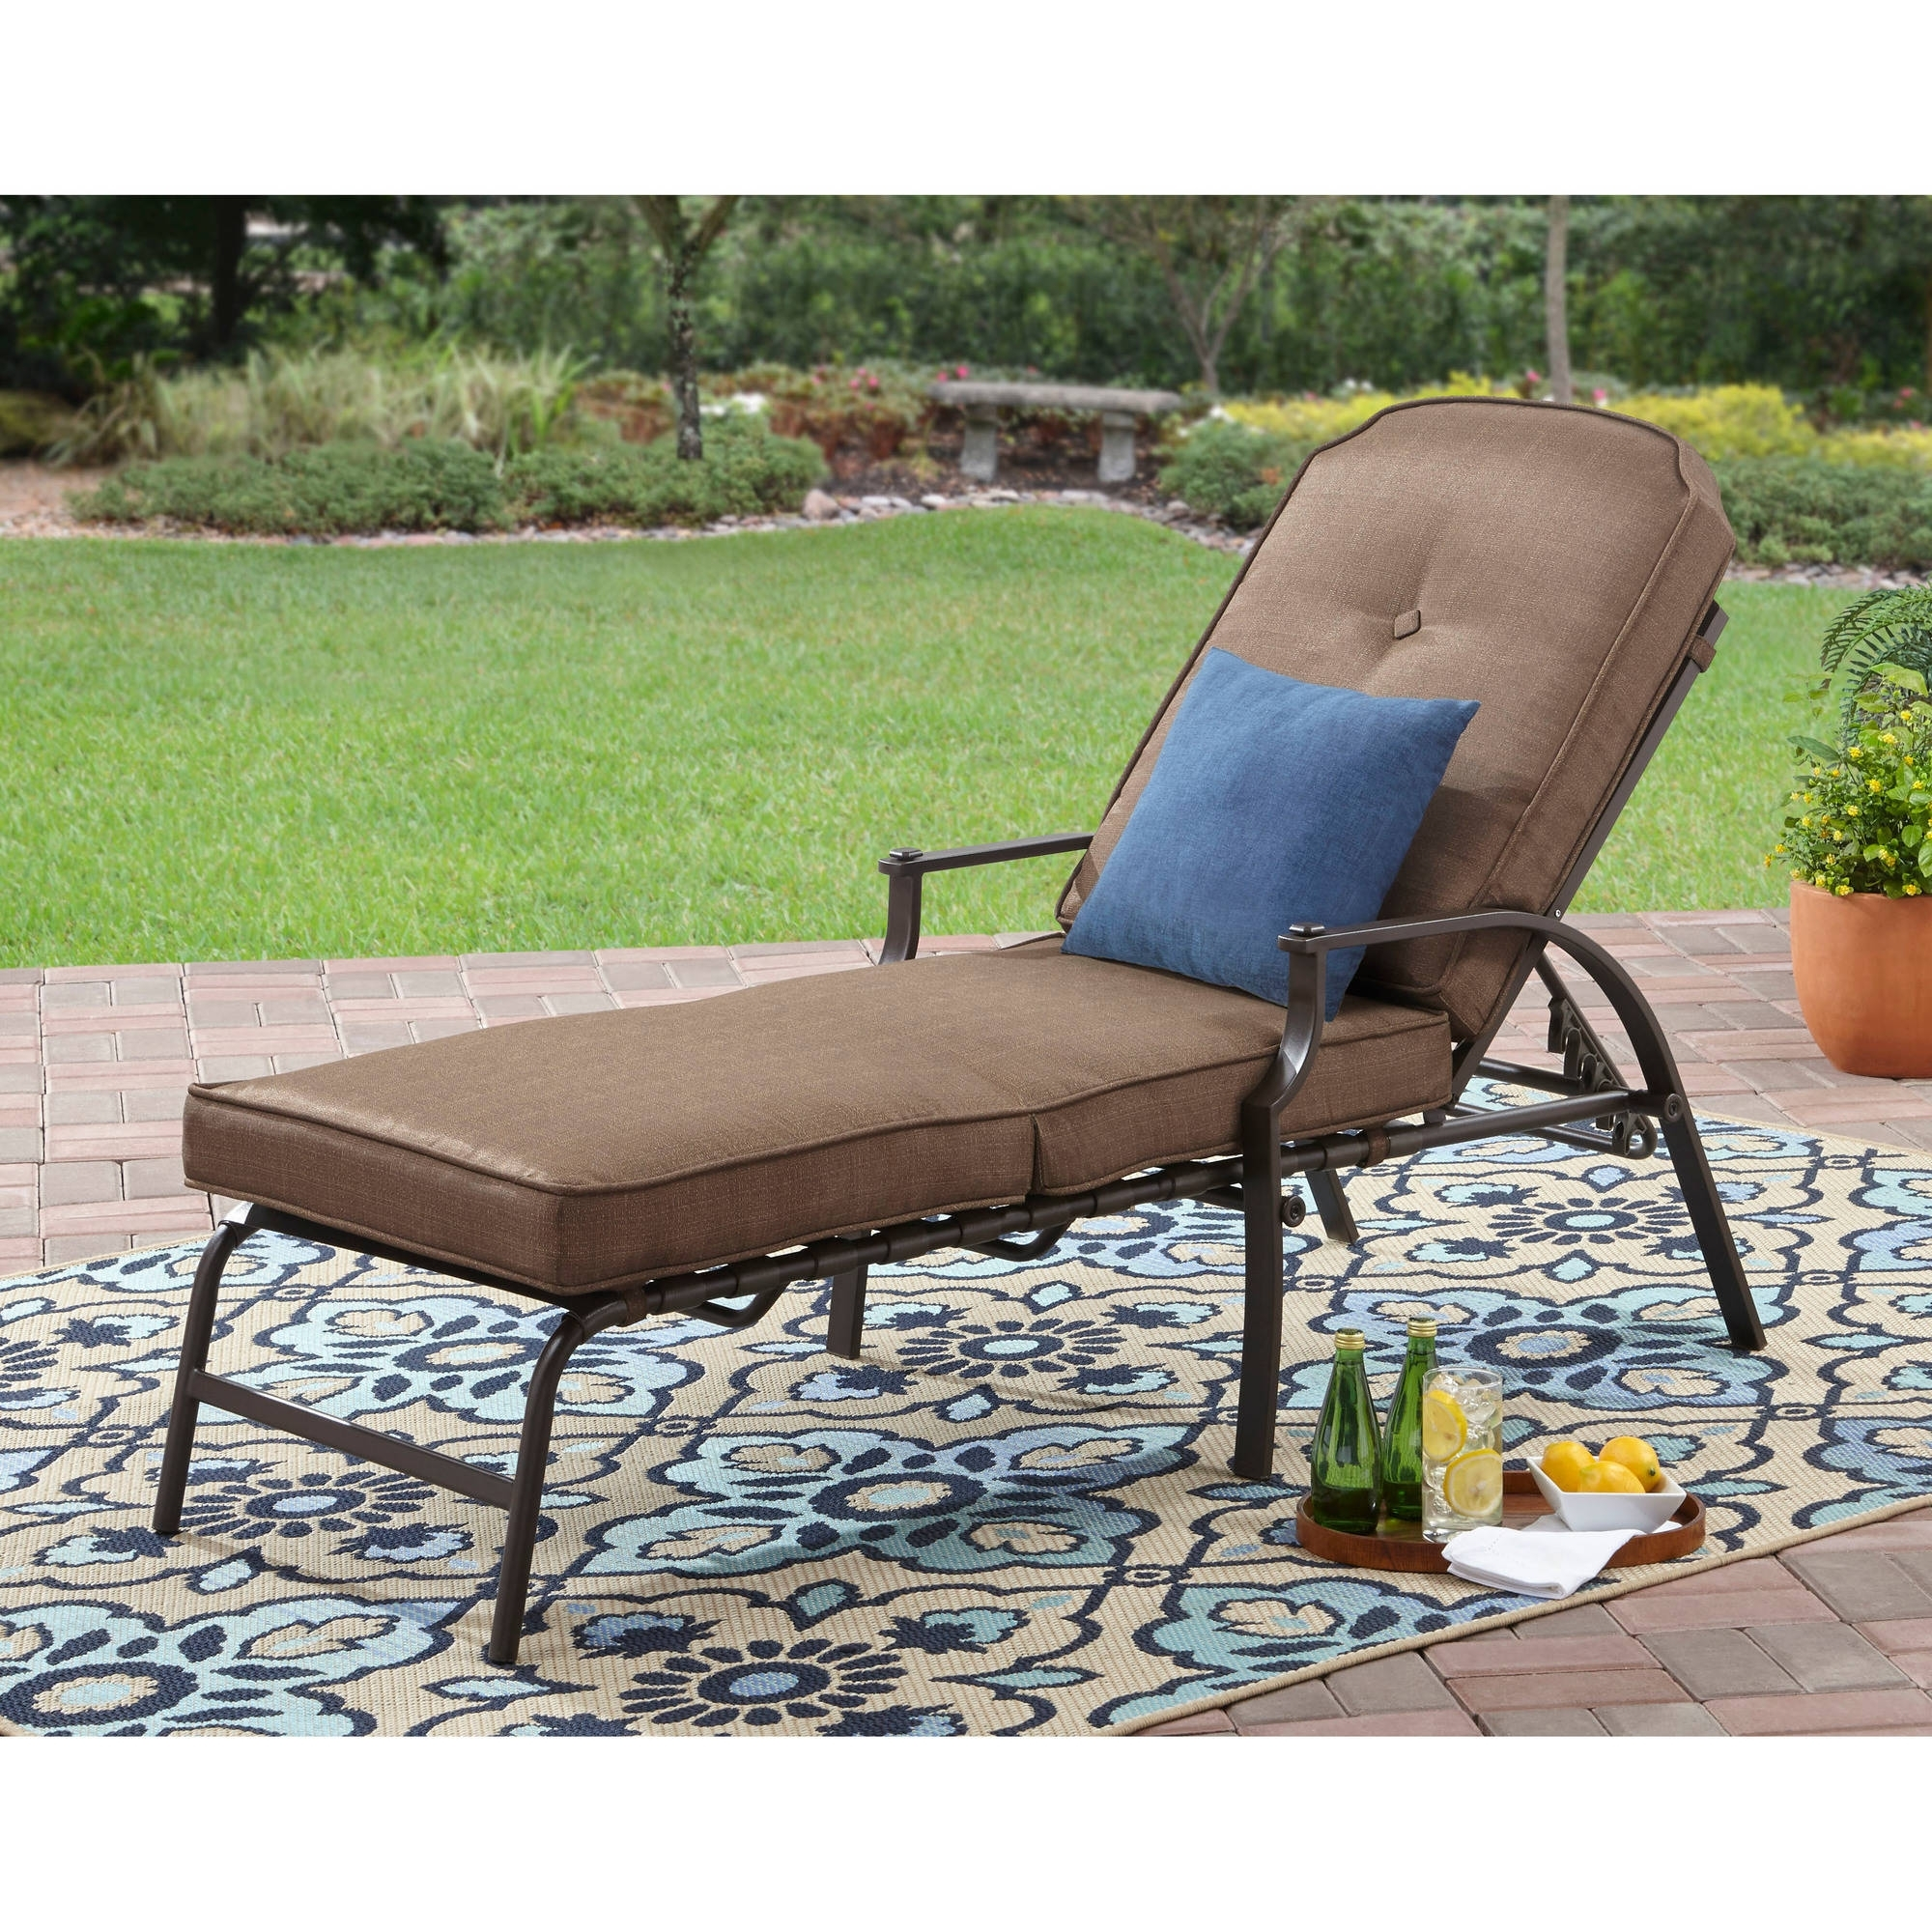 Fashionable Walmart Chaise Lounge Cushions With Mainstays Wentworth Chaise Lounge – Walmart (View 12 of 15)